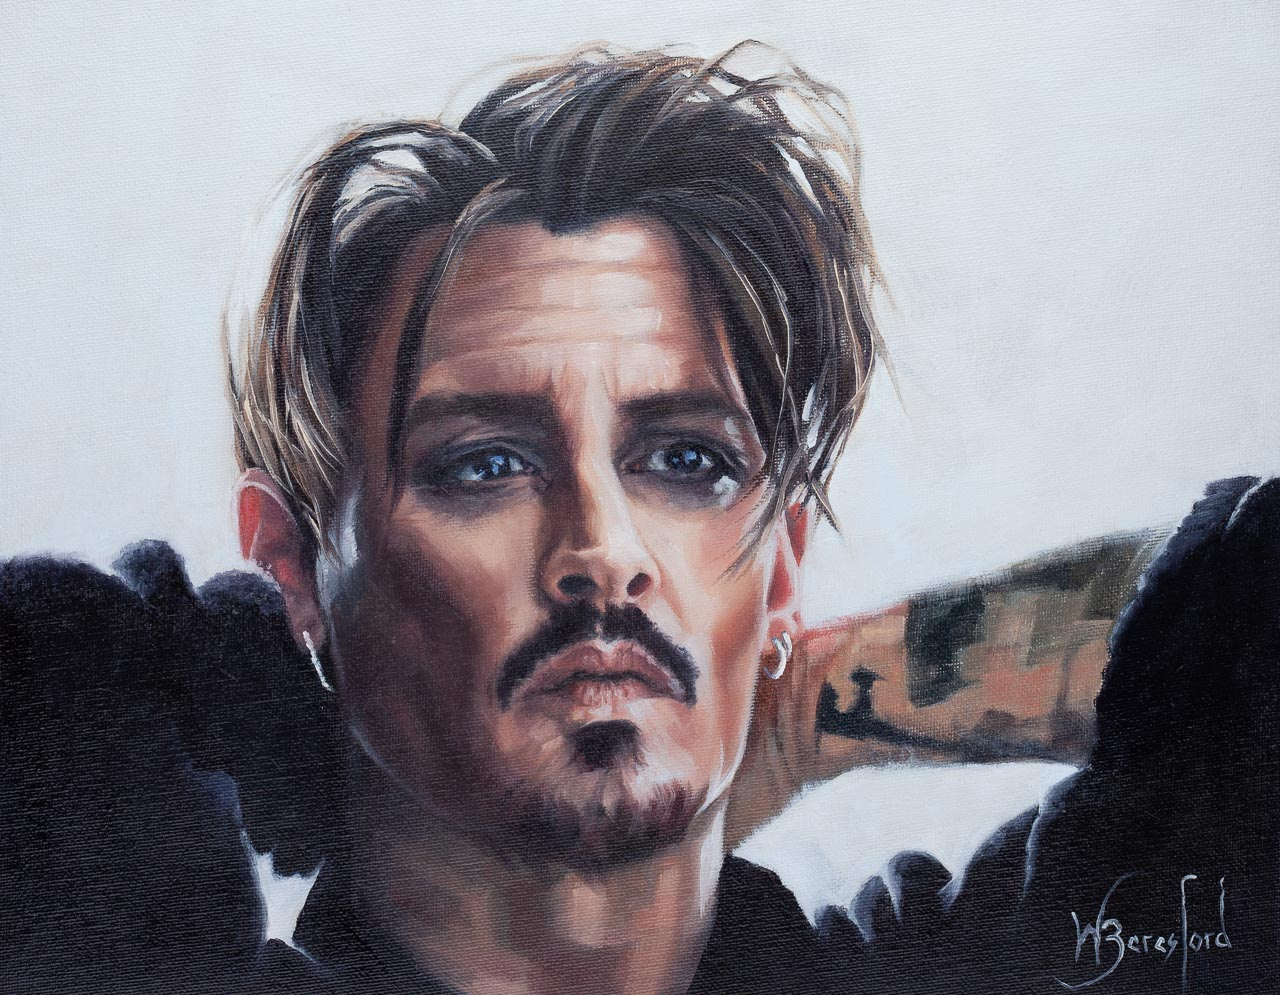 Portrait of Johnny Depp, oil on canvas, by Wendy Beresford